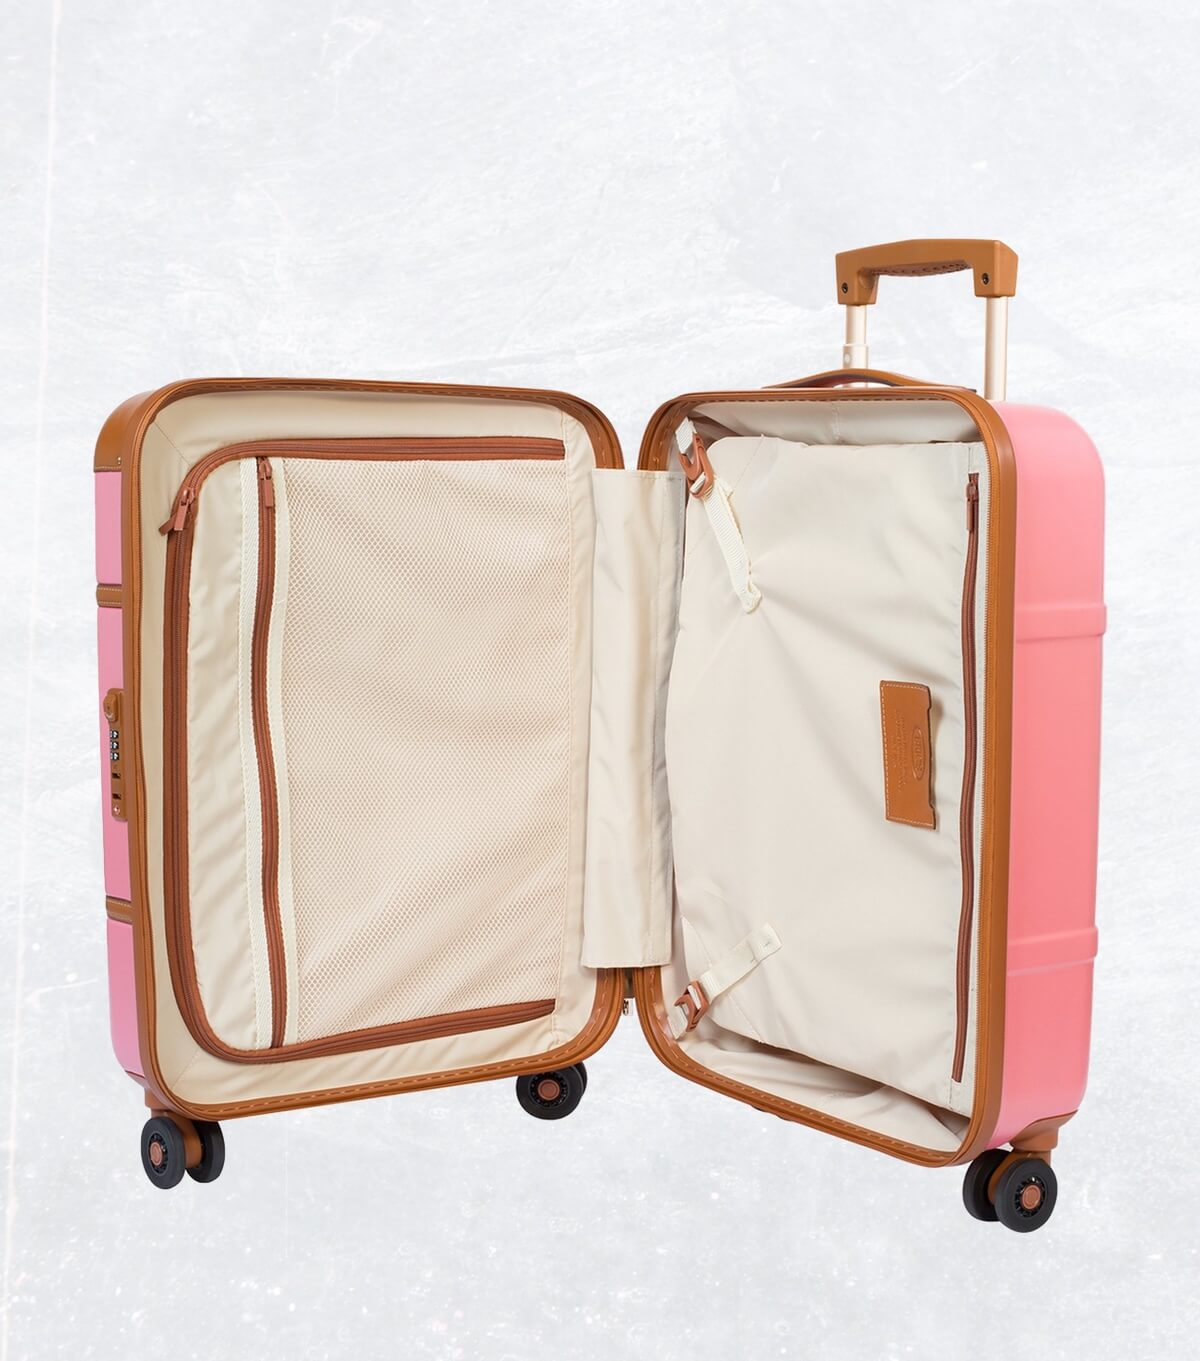 Pink Luggage: 8 Gorgeous Pink Suitcases - Thither